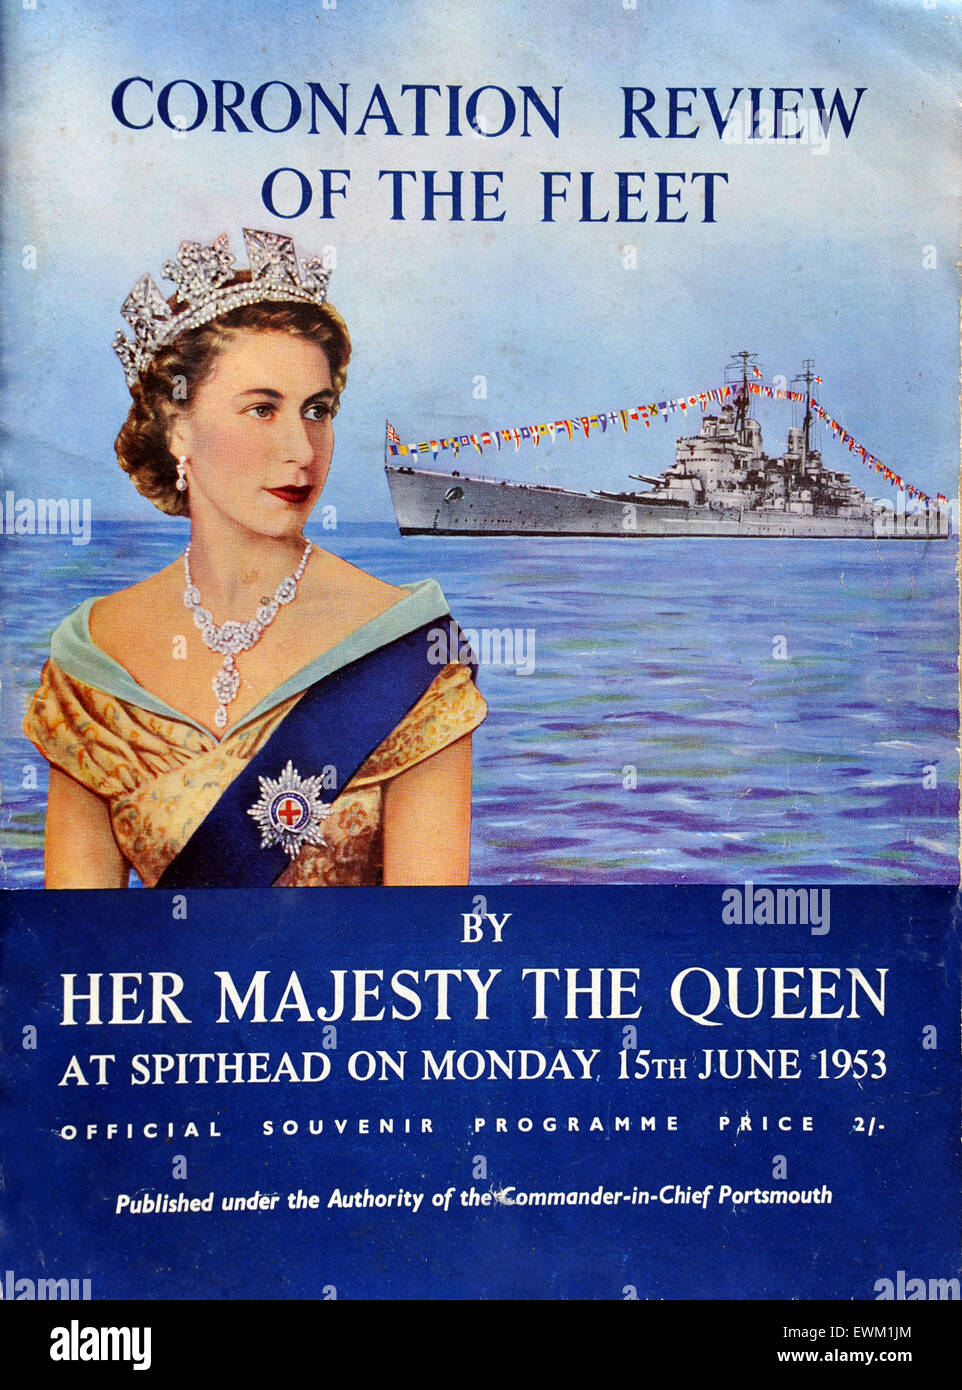 Coronation Naval Fleet Review programme at Spithead near Portsmouth for Queen Elizabeth II from 1953. Britain. - Stock Image